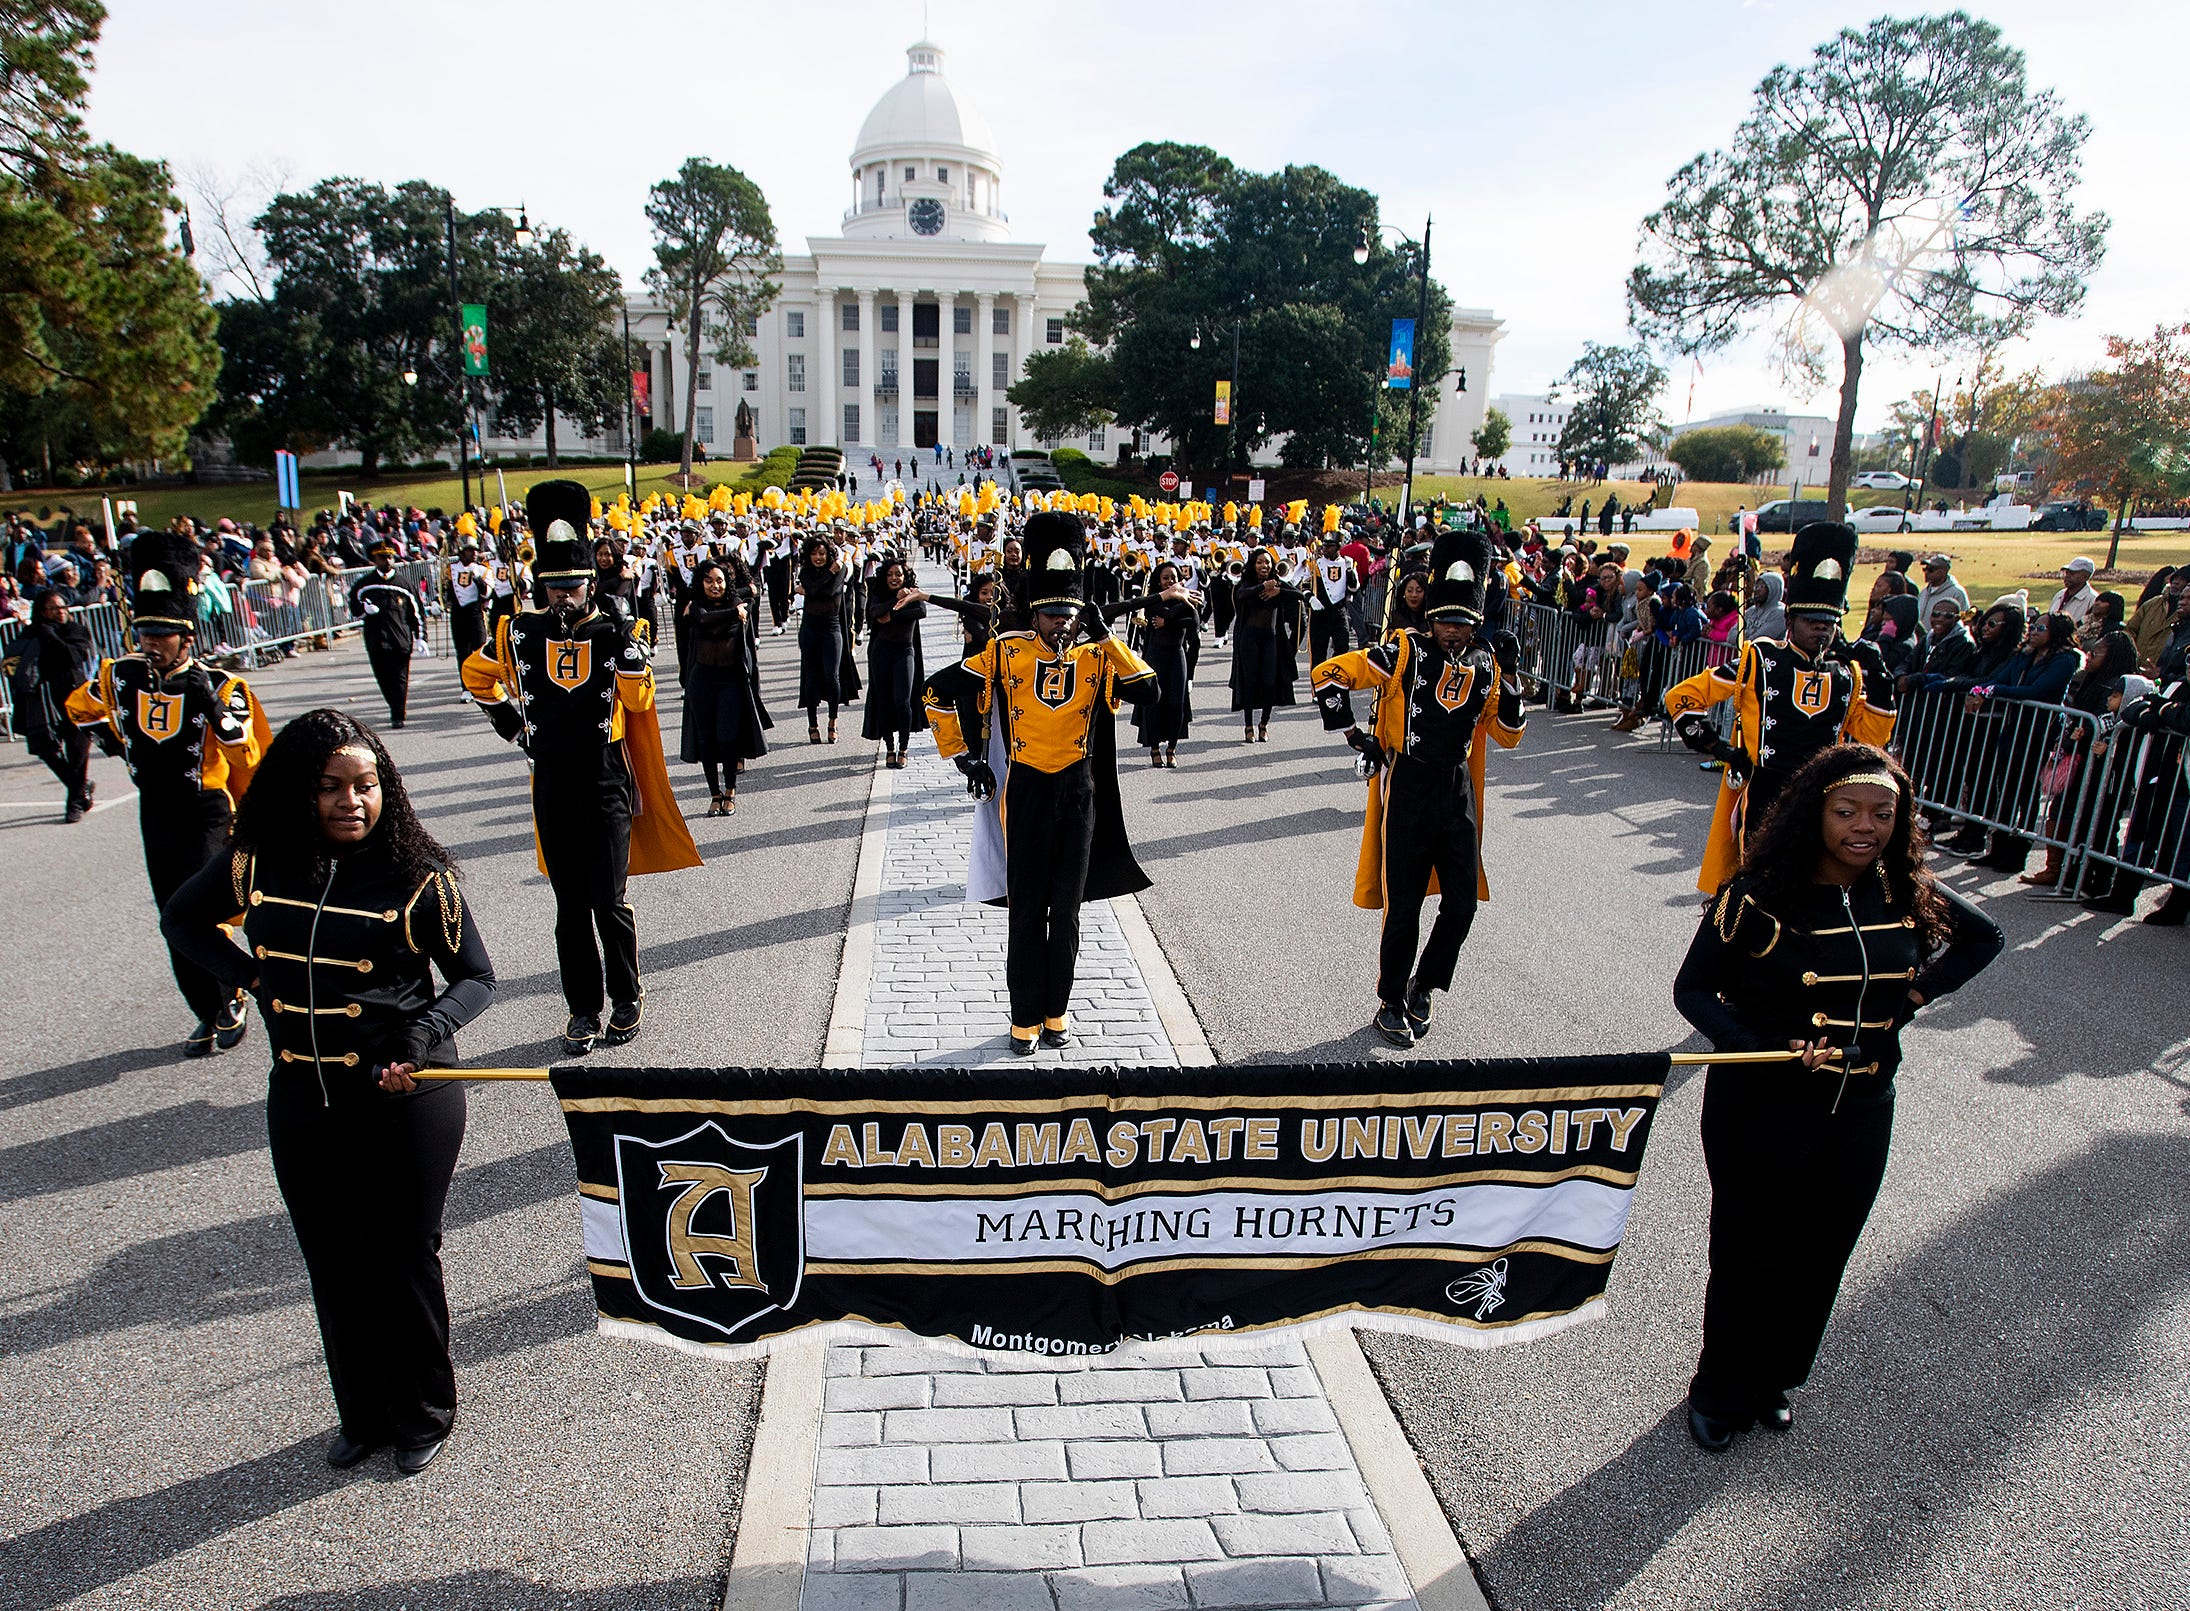 The Alabama State University Marching Hornets during the Turkey Day Classic Parade in downtown Montgomery, Ala., on Thanksgiving Day, Thursday November 22, 2018.